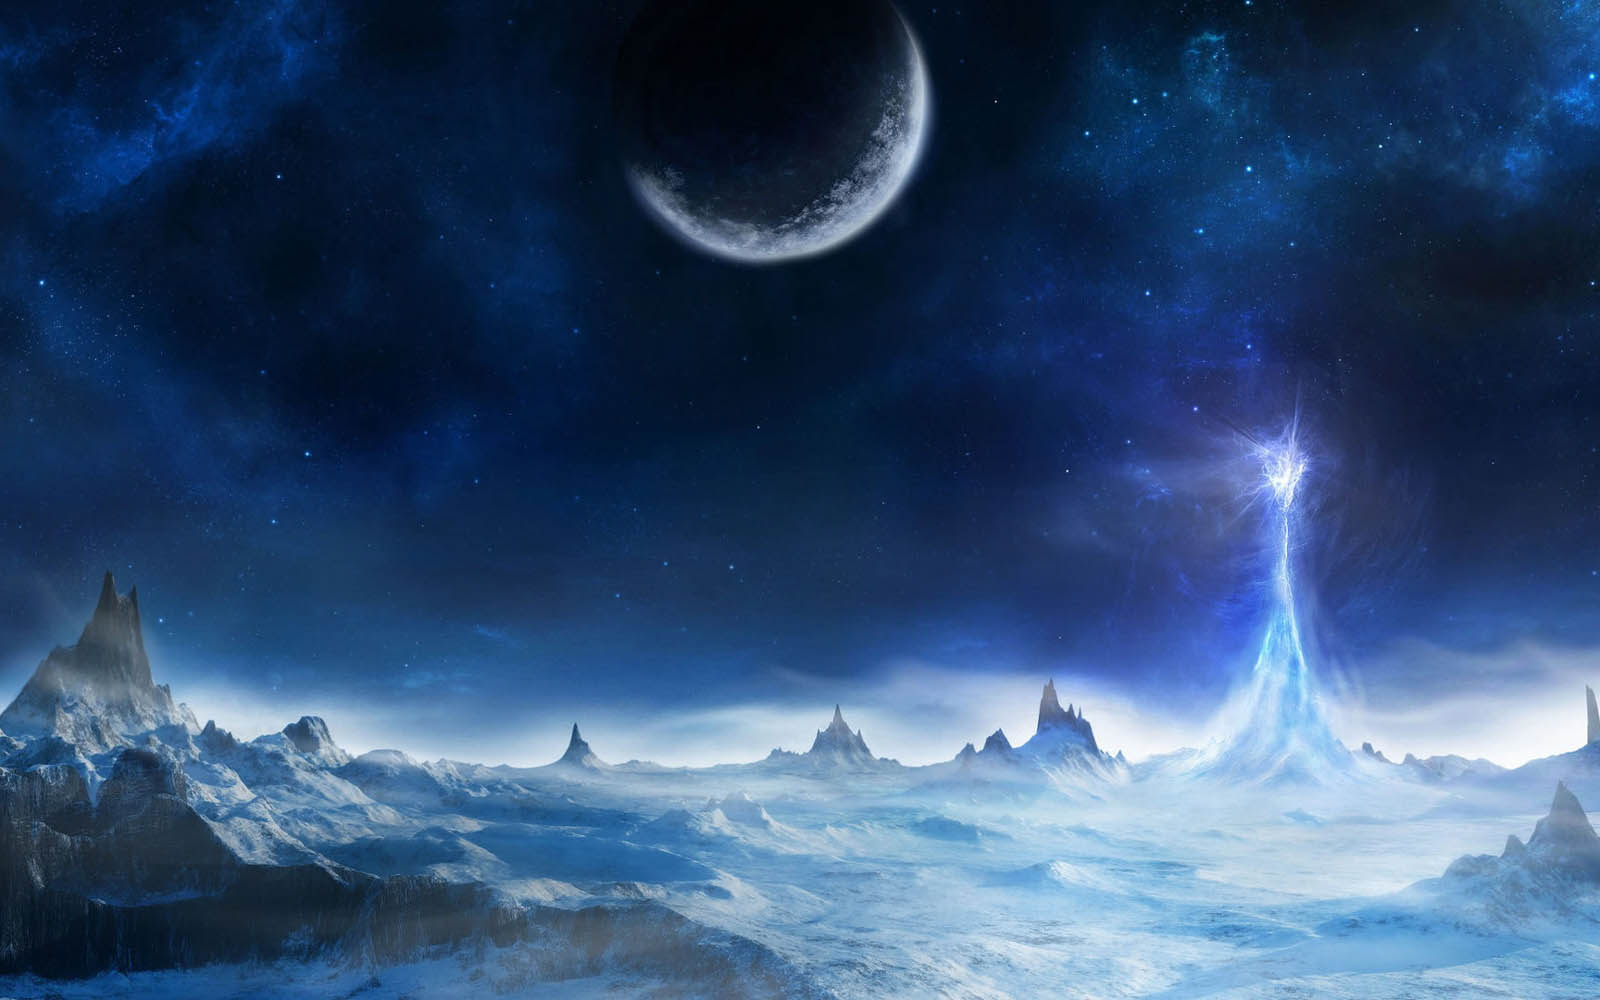 wallpapers: Fantasy Art Scenery Wallpapers